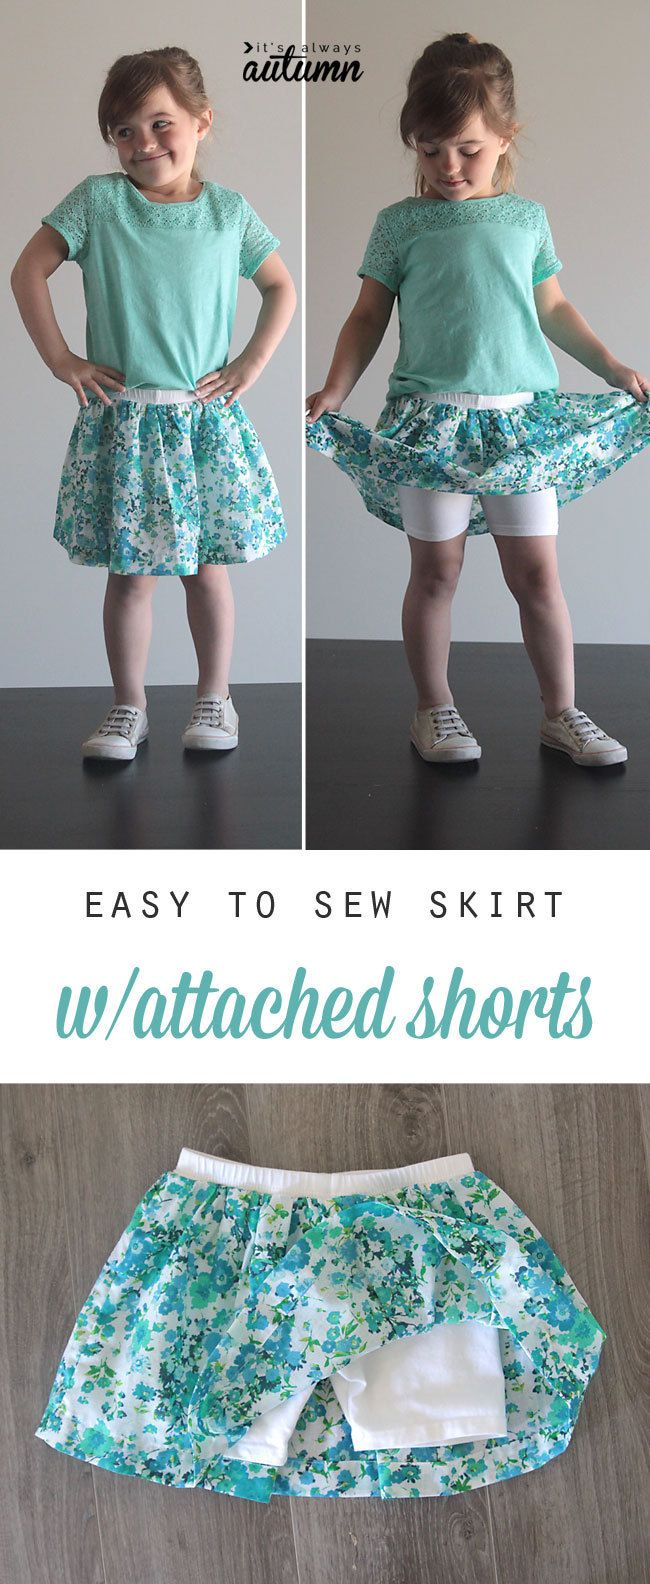 24 Best Baby And Toddler To Make Images On Pinterest Hand Crafts Mom N Bab Skirt Blue Ruffle Hem Add Fabric Purchased Shorts A Cute With Attached This Looks So Easy